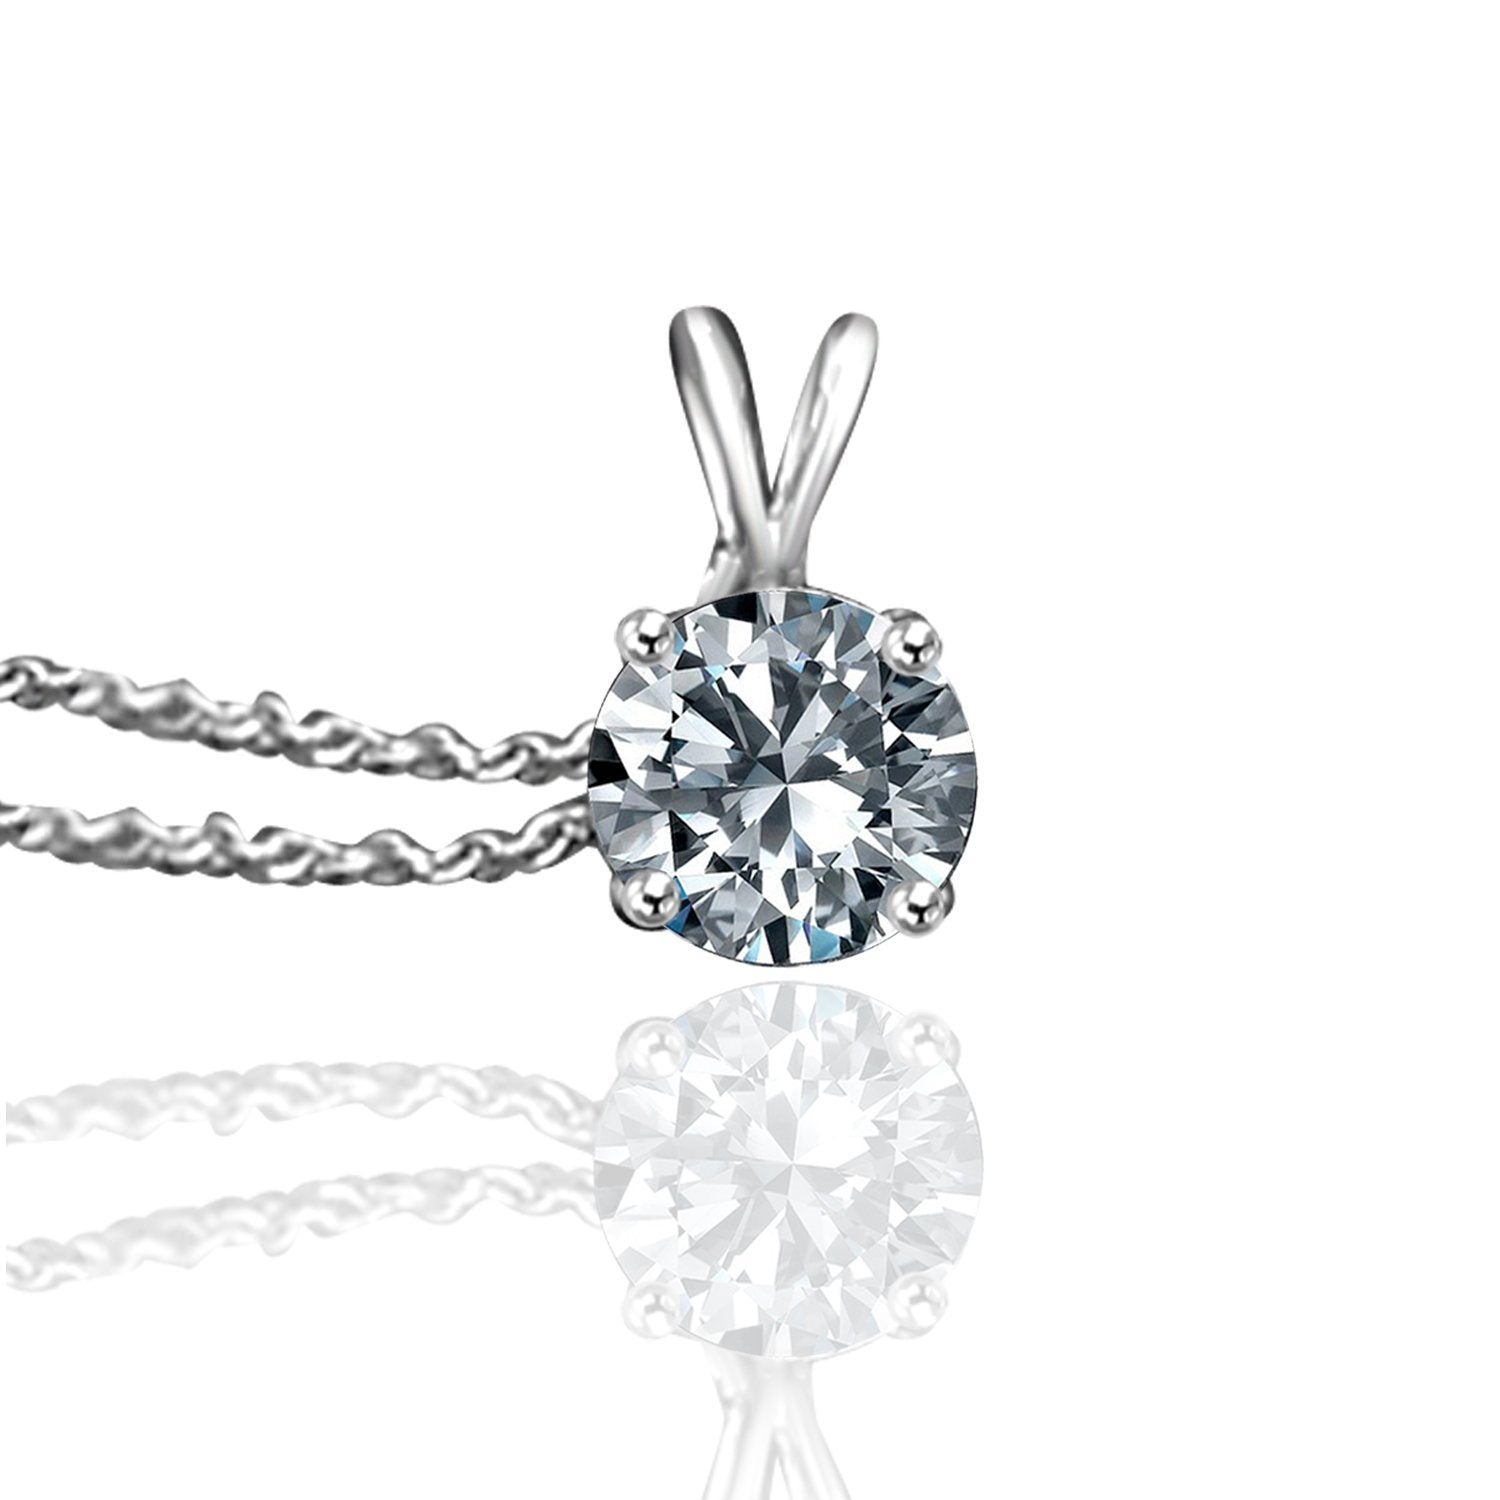 3 ct. intensely radiant round diamond veneer cubic zirconia with bail solitaire sterling silver pendant. 635p300a